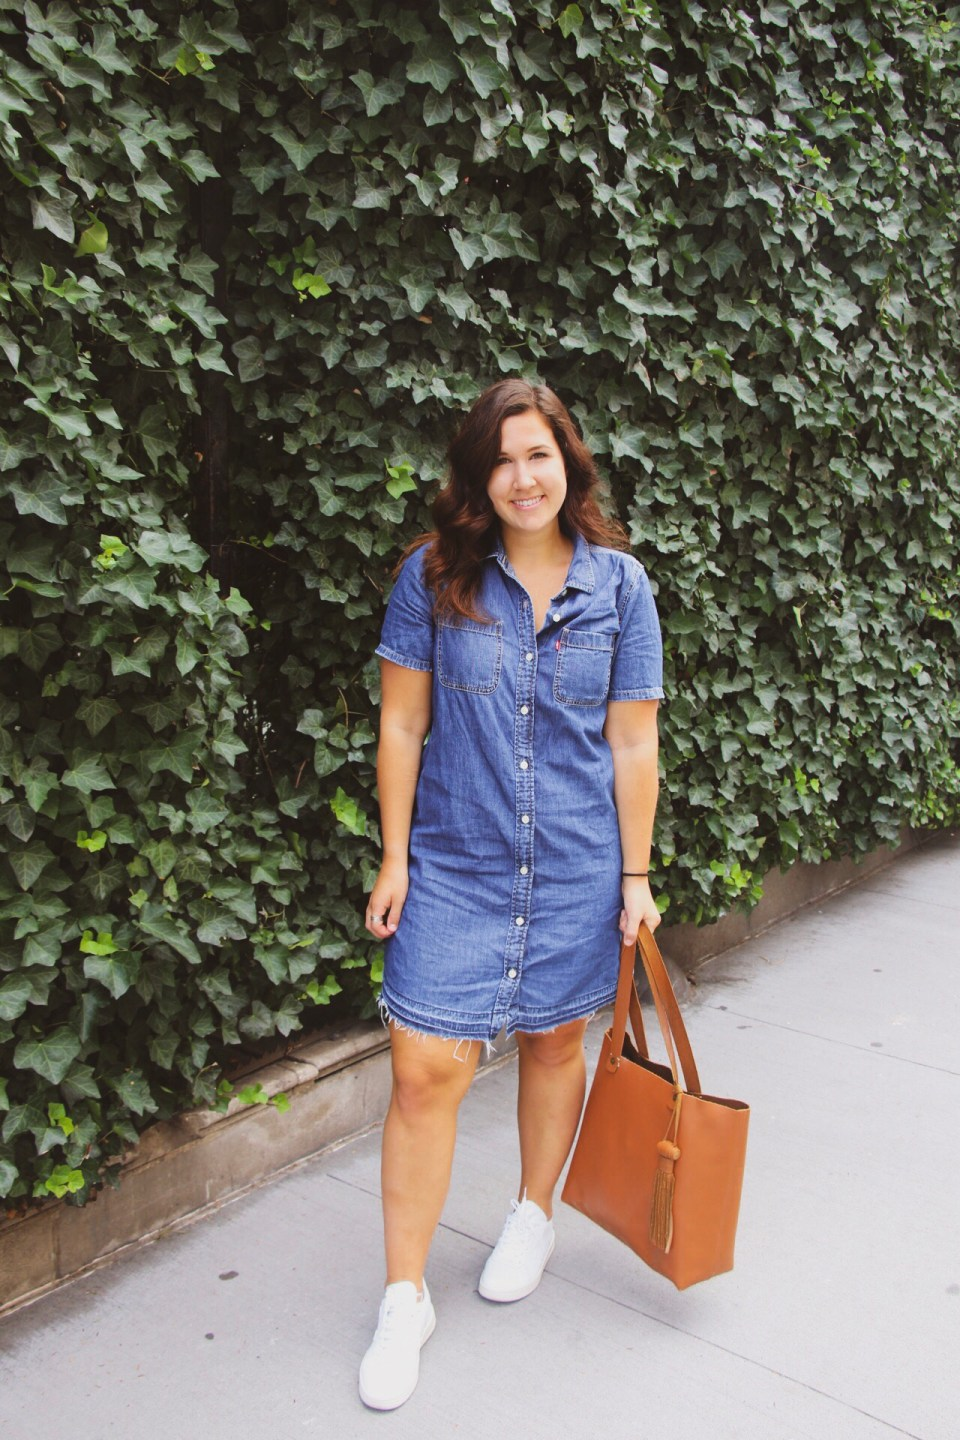 A Walk in my Errand Shoes: Veja Sneaker Review